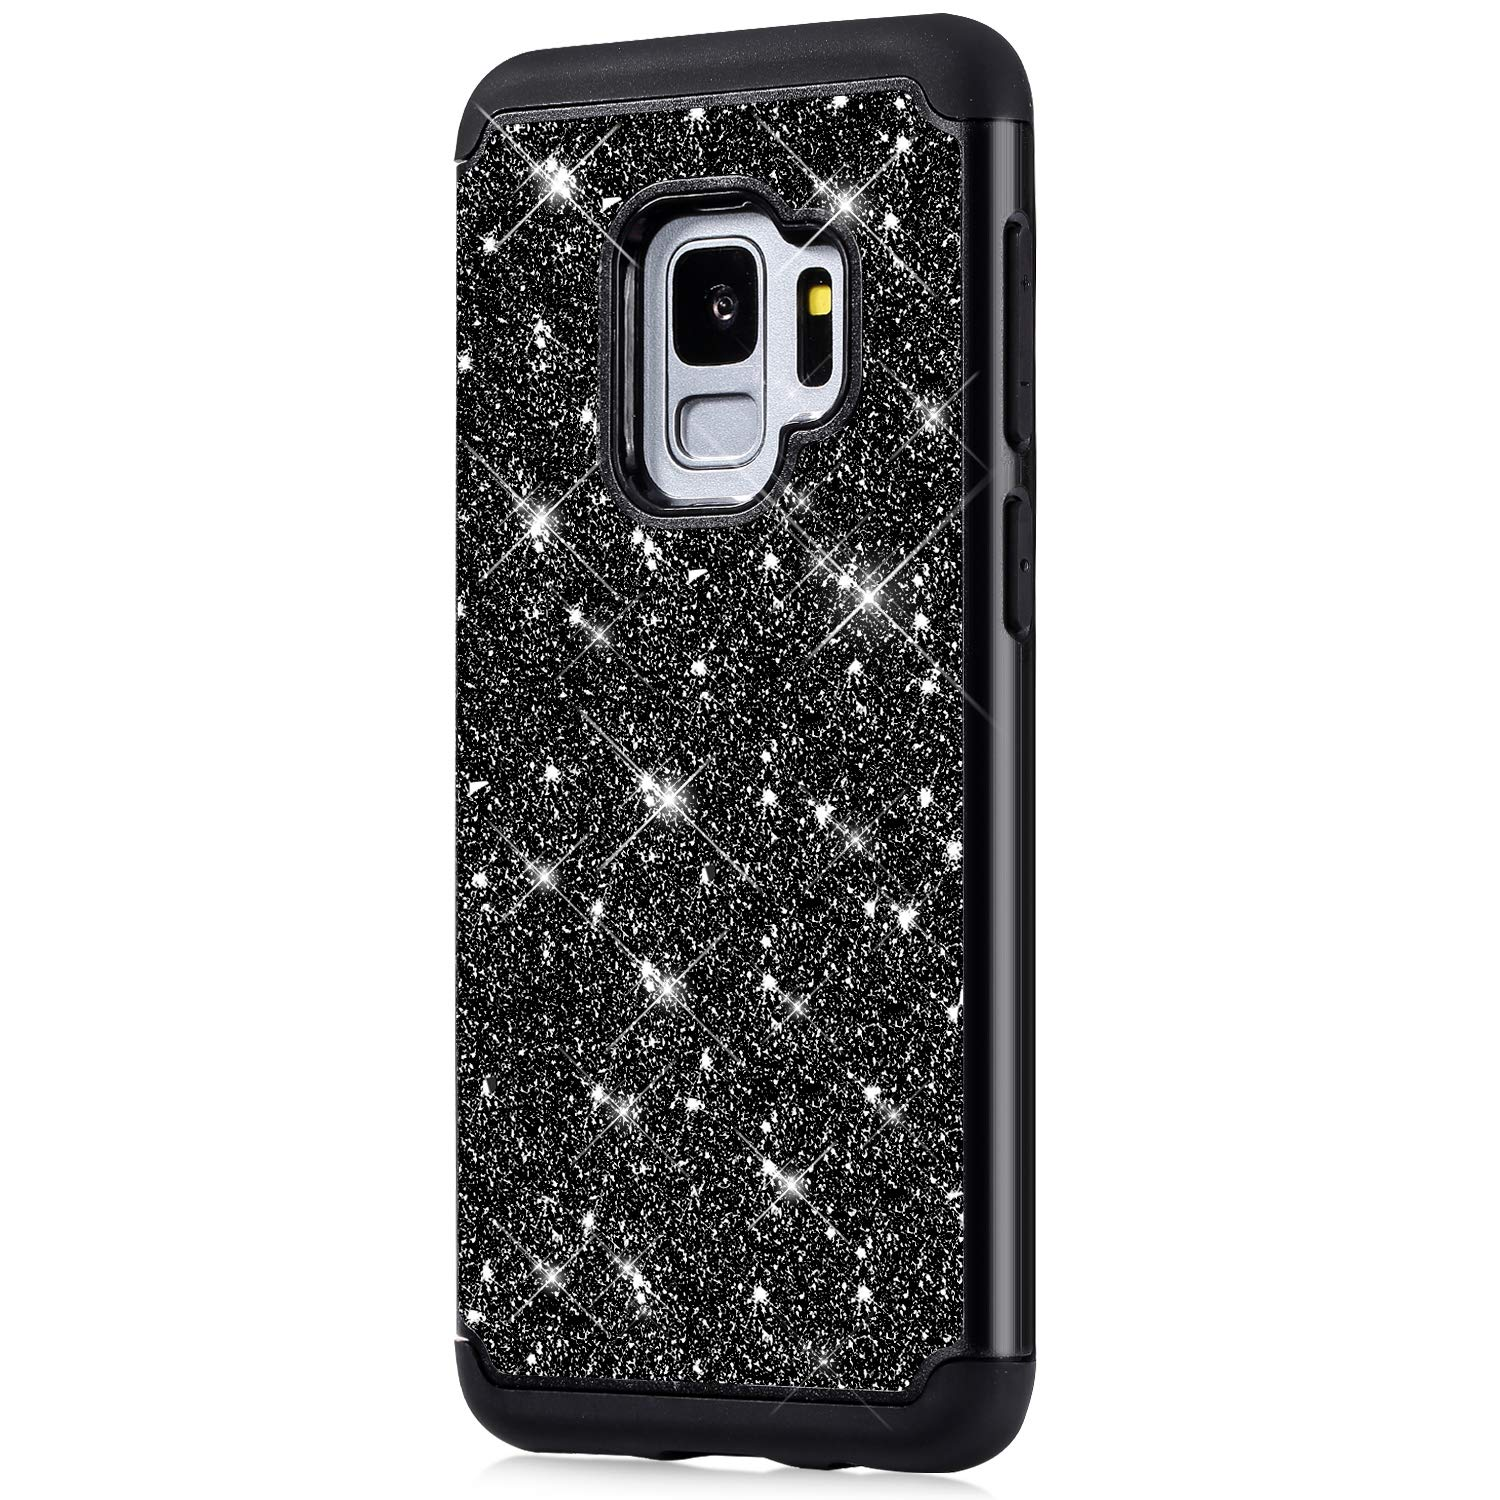 ikasus Case for Galaxy S9 Bling Case,Glitter Sparkle Bling Full-Body Protection Heavy Duty Hybrid Shockproof Defender Hard Shell Silicone Rubber TPU Cover Case for Galaxy S9 Cover,Black by ikasus